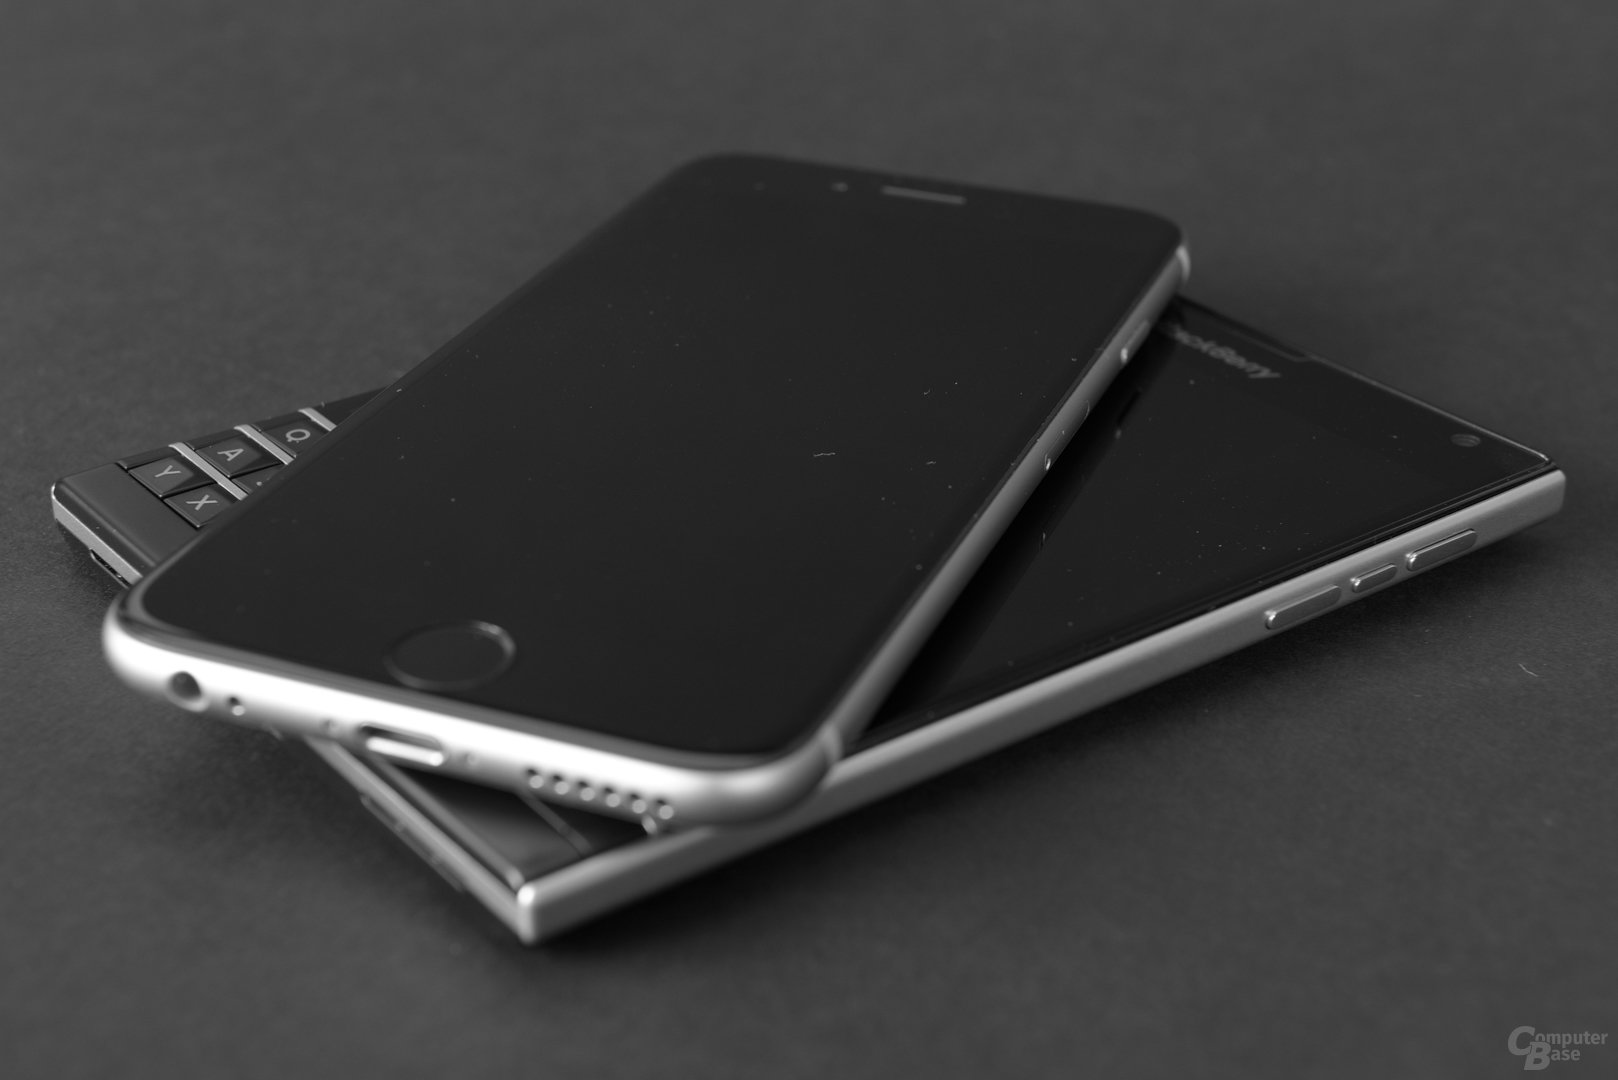 Das BlackBerry Passport und das iPhone 6